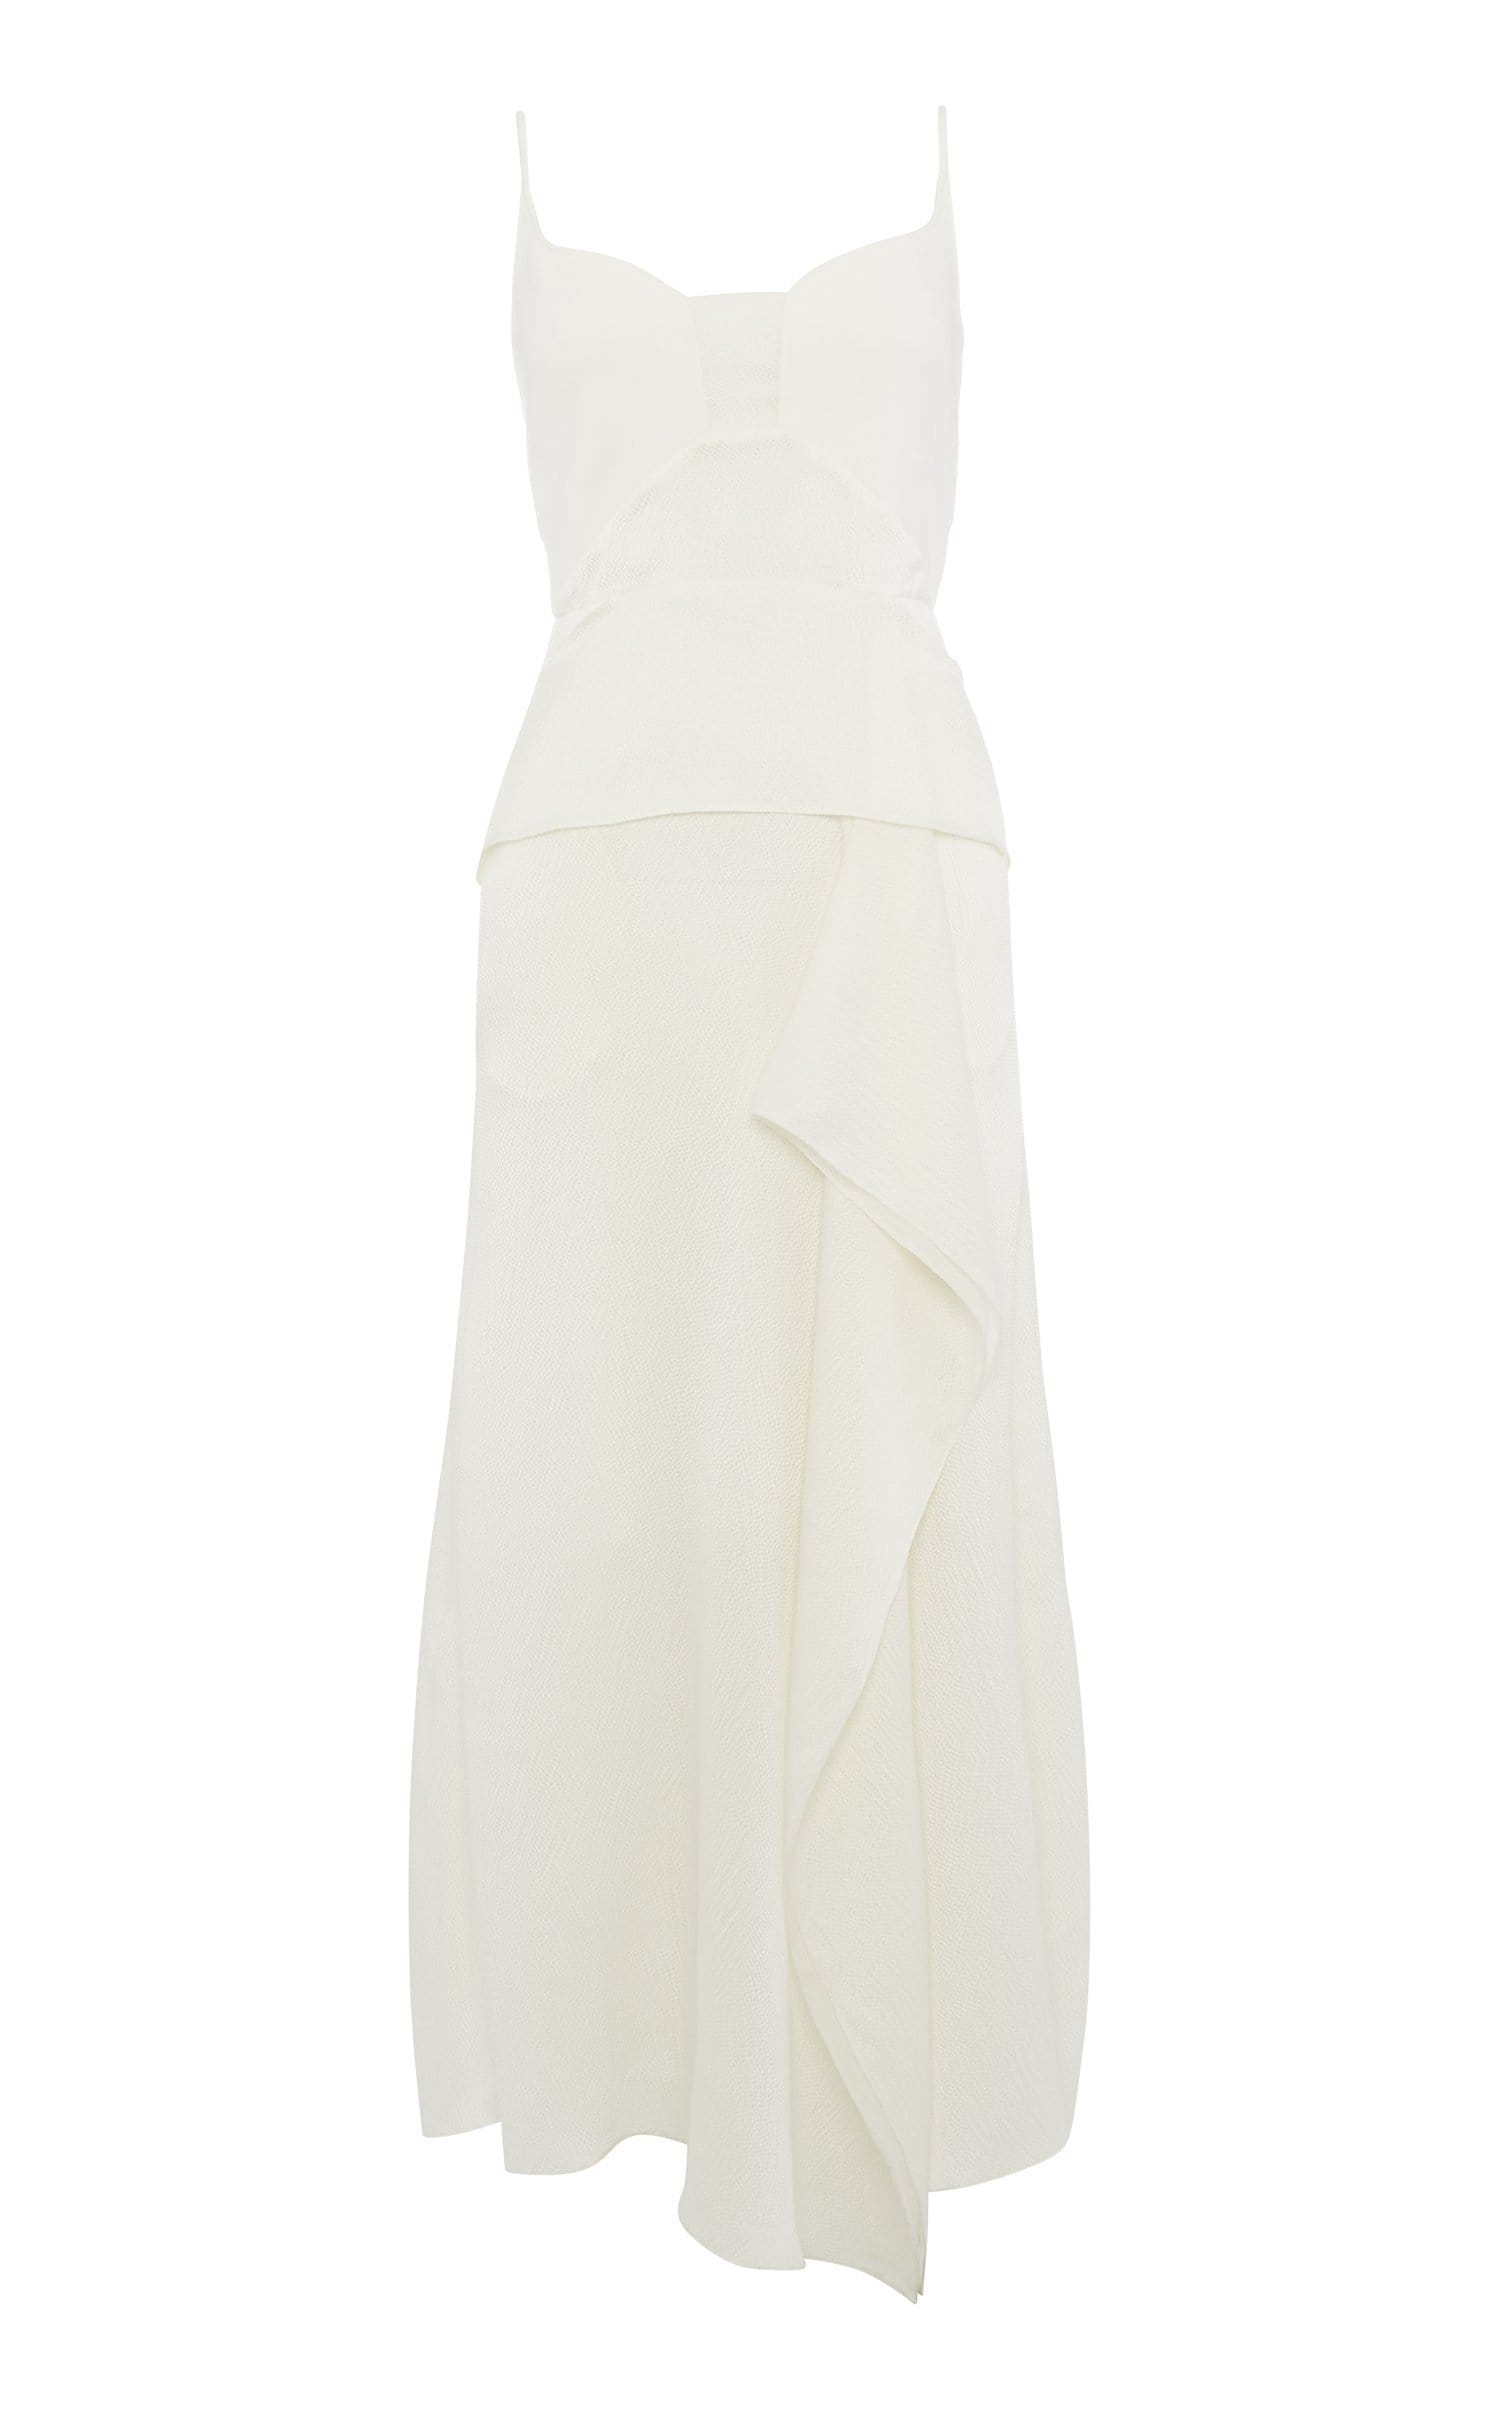 Luske Dress In White from Roland Mouret